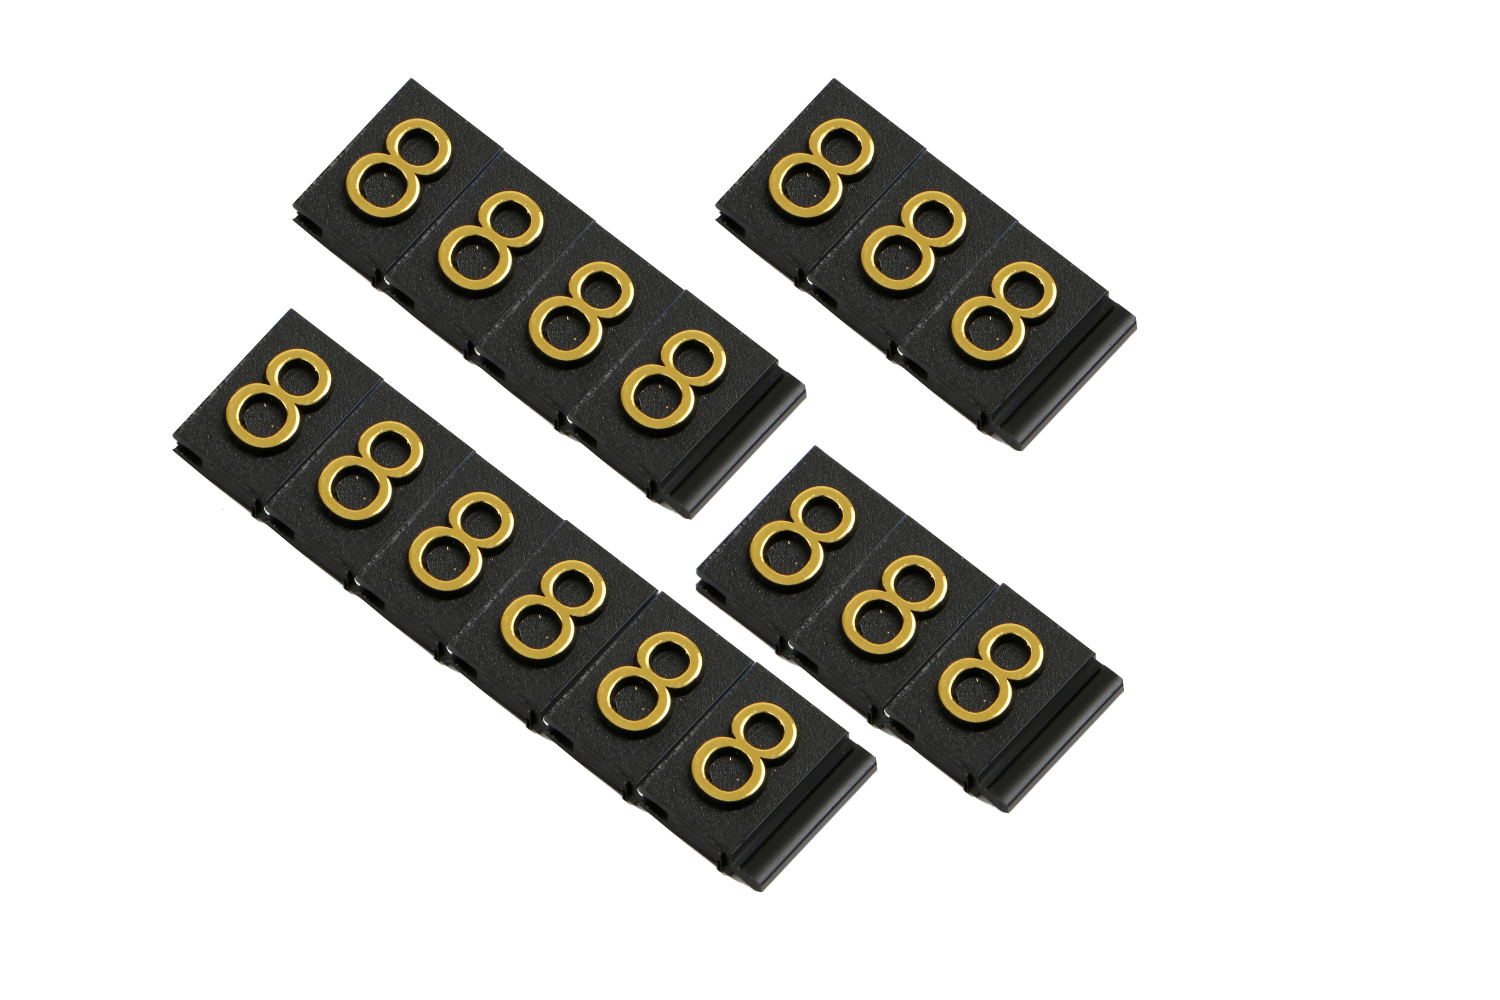 Lot Of 10 Same Adjustable Price Tags Assembly Arabic Numerals Jewelry Cothes Shop Counter Top Digit Display Cube Sign Label P1